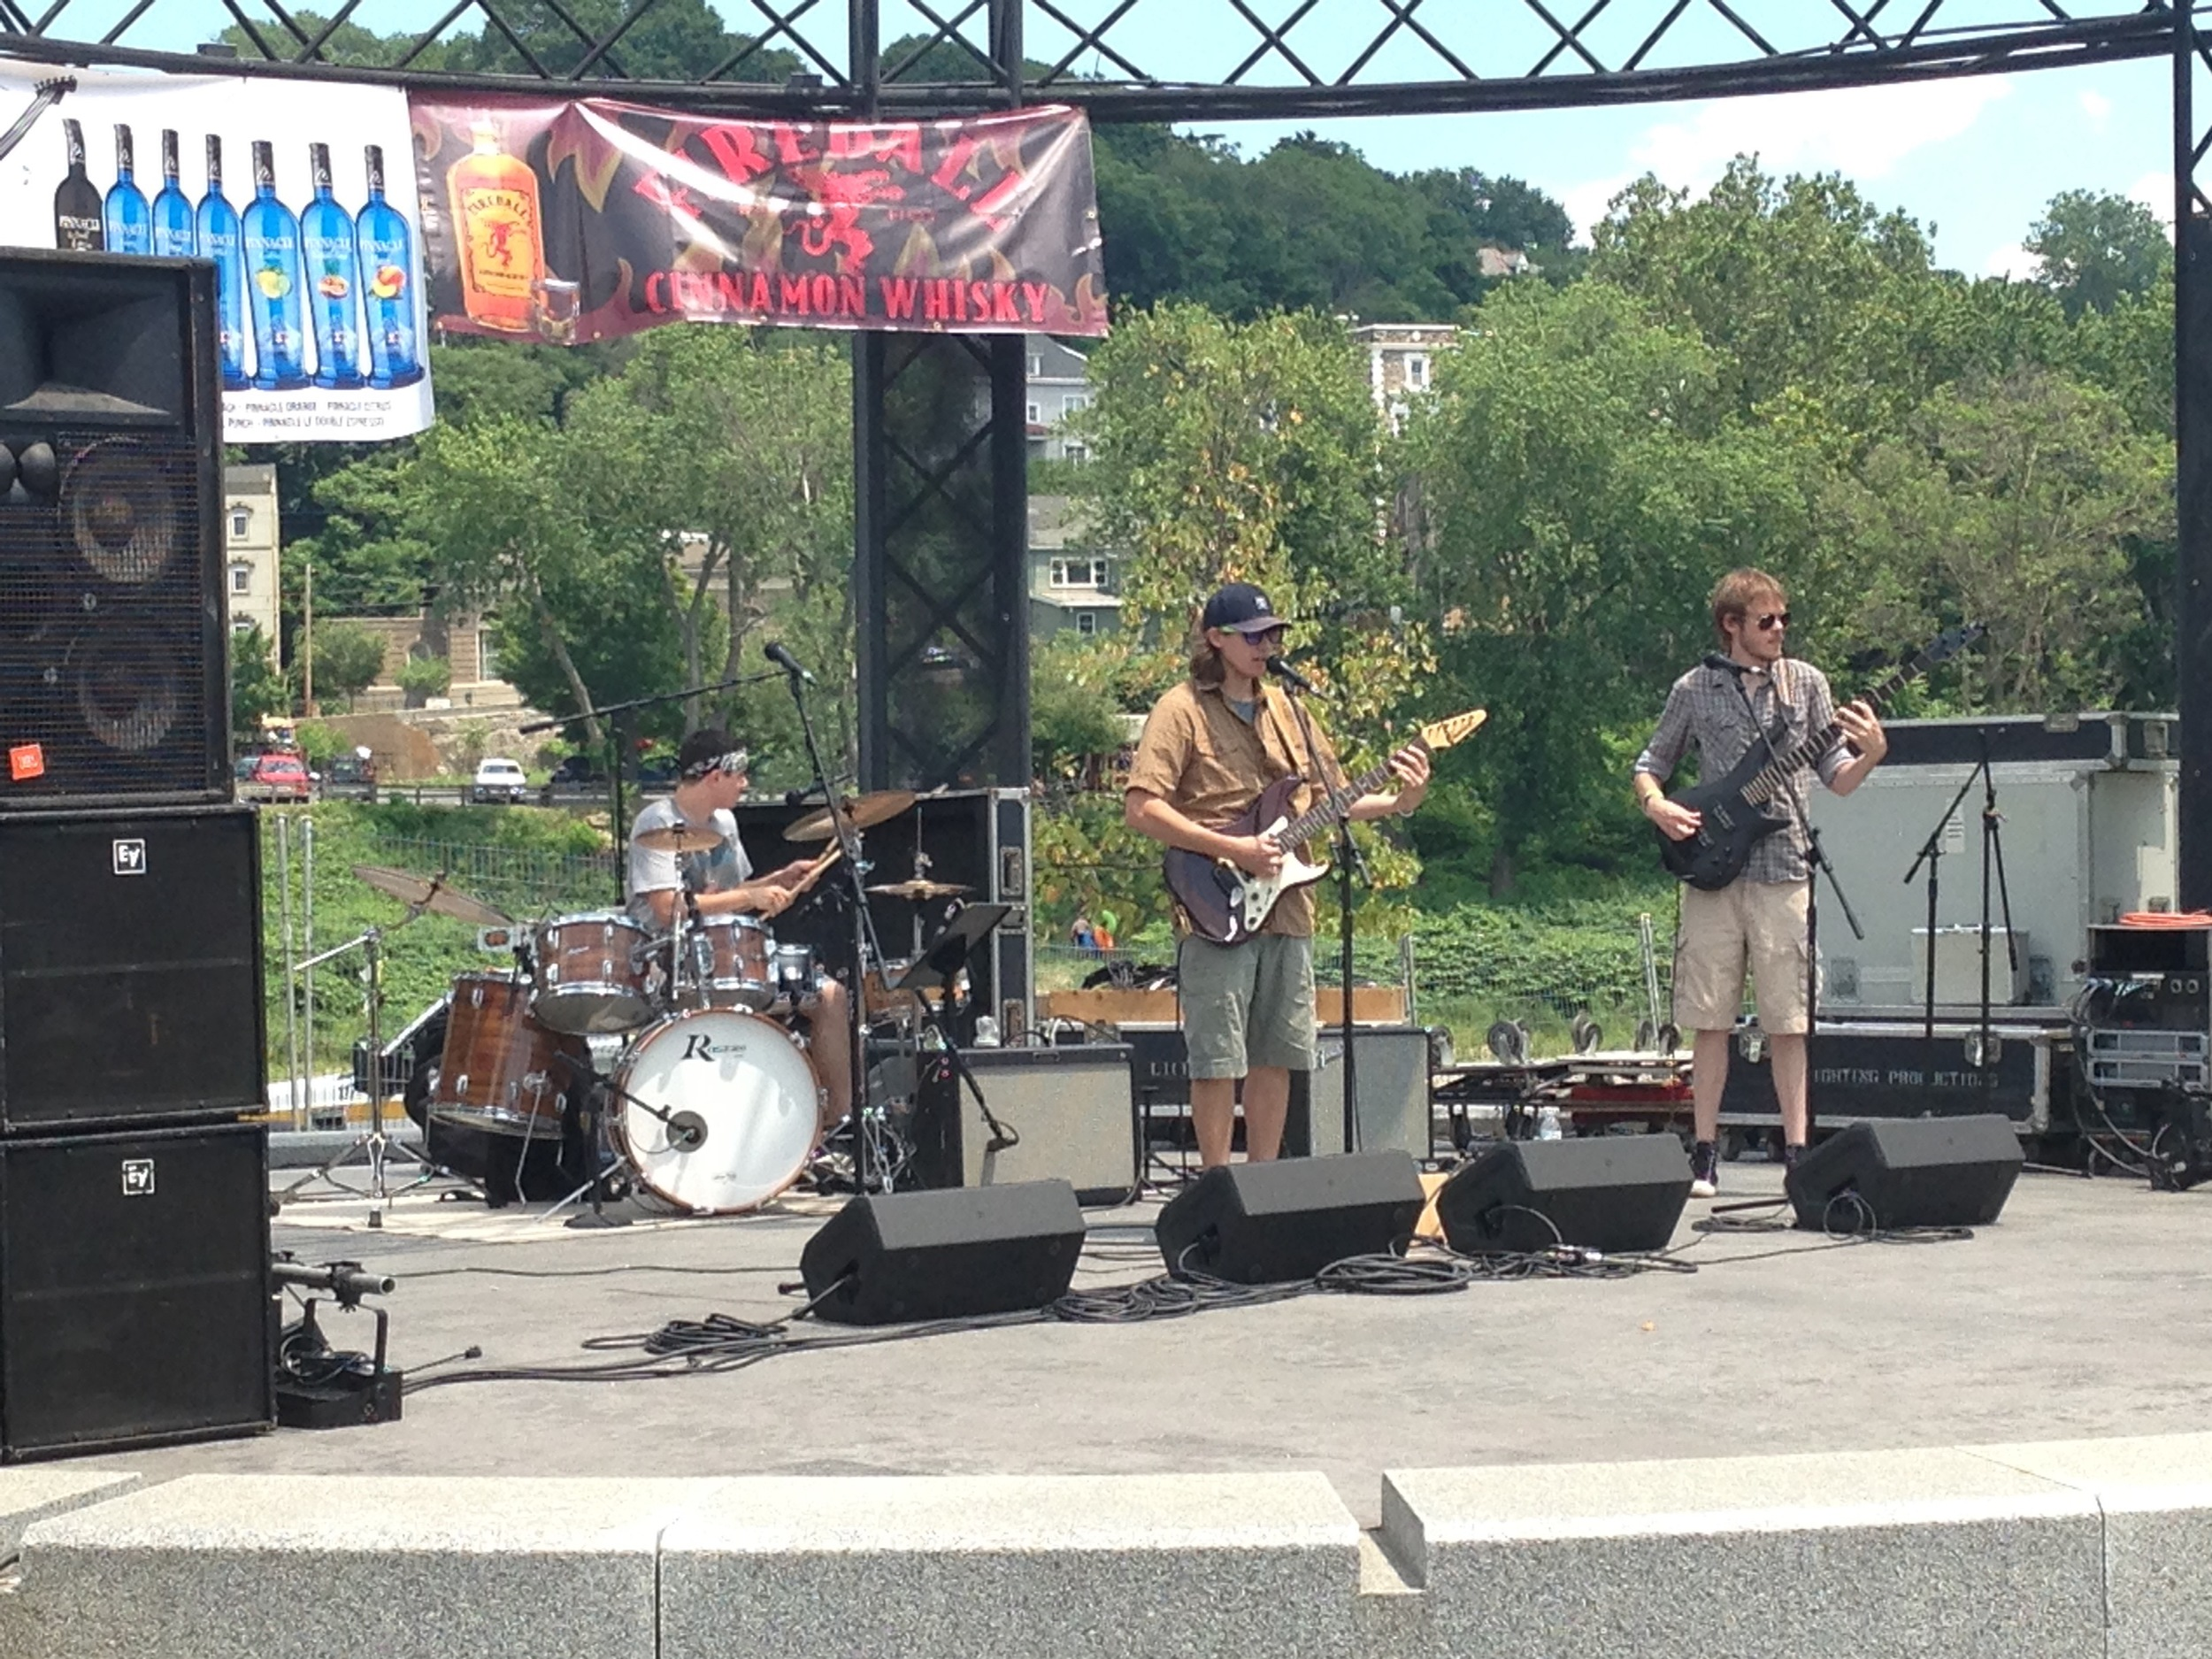 The Mosey Beet performs at Easton River Jam  (Dustin Schoof Photo)